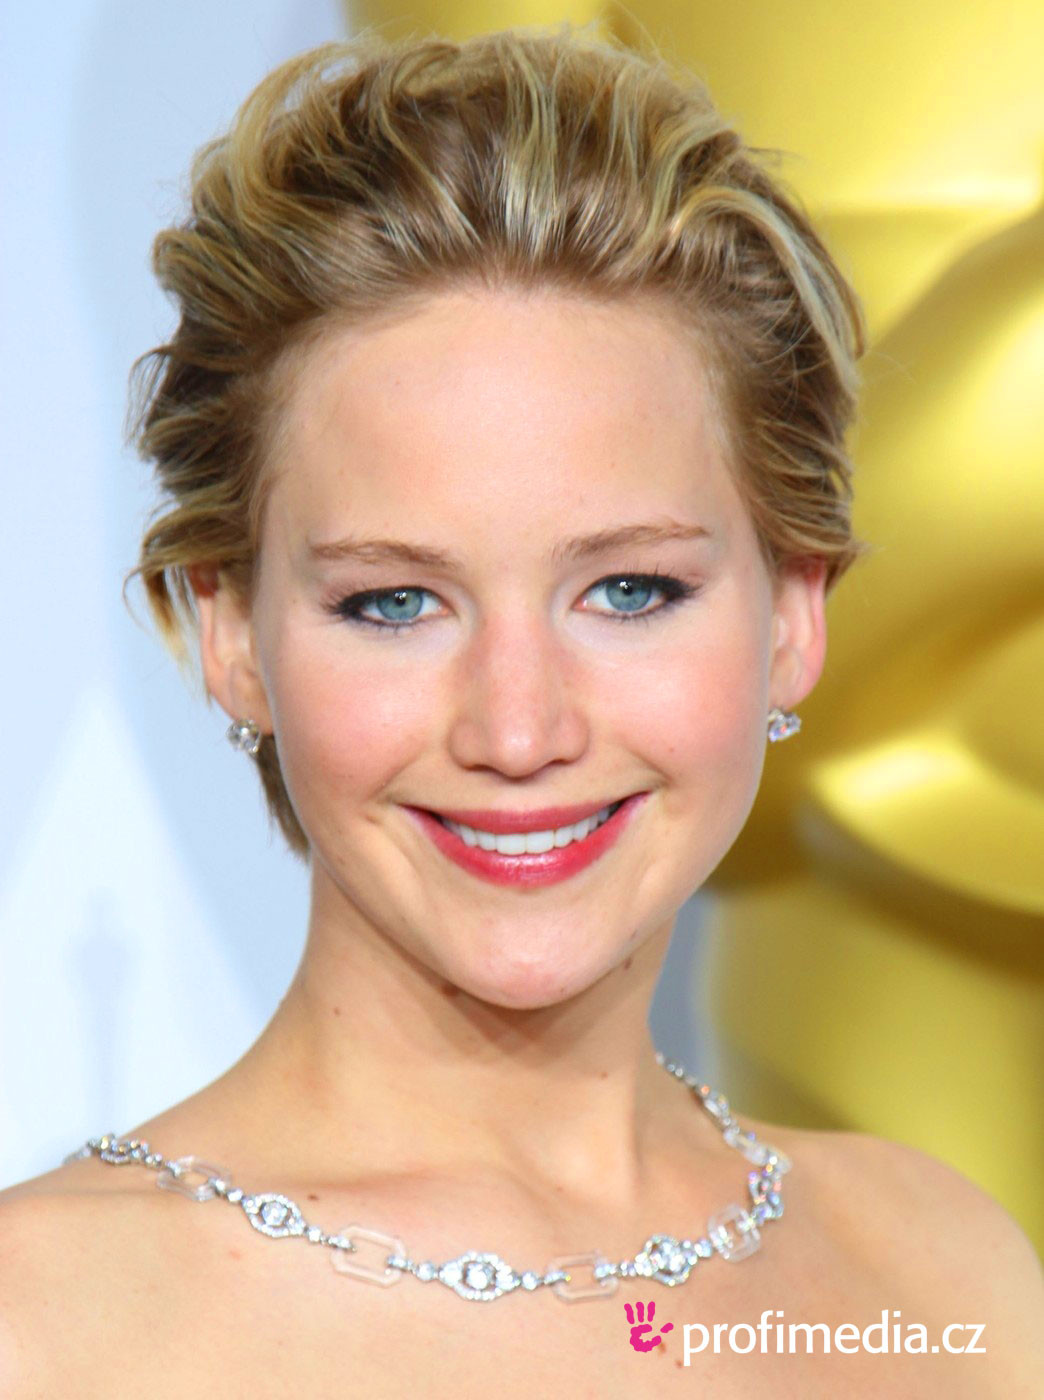 Jennifer Lawrence Frisuren  Jennifer Lawrence frisur zum Ausprobieren in eFrisuren